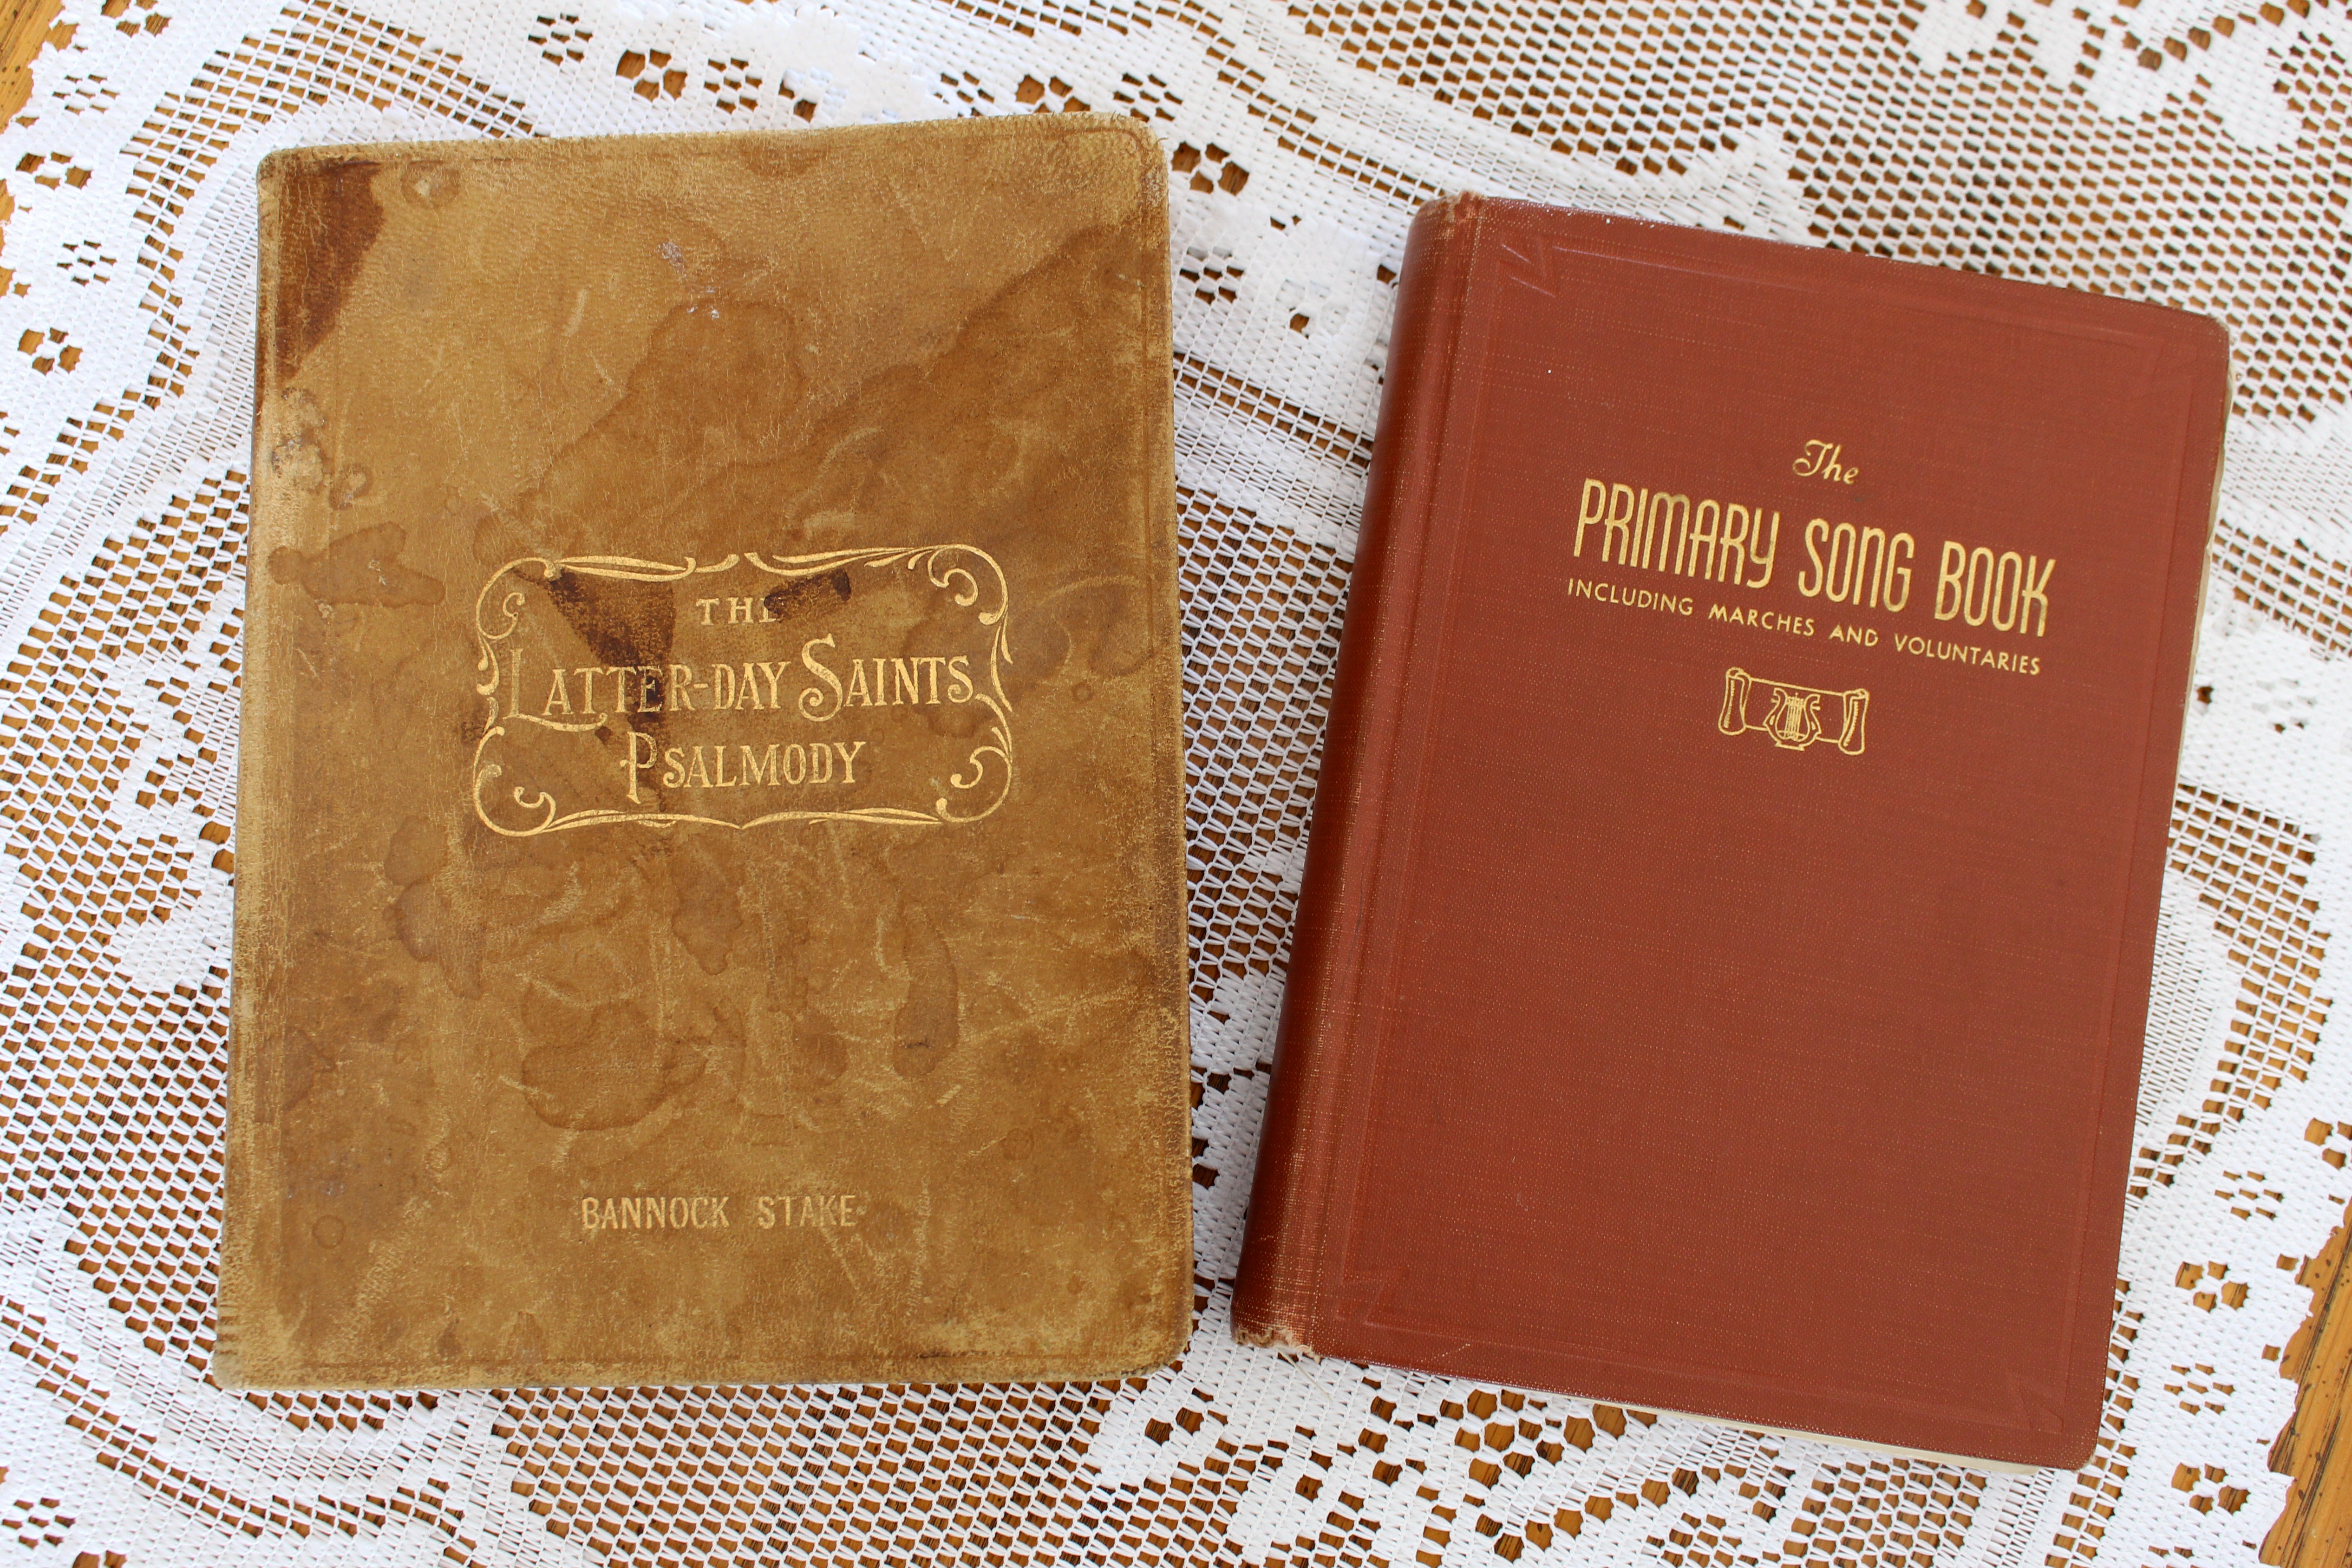 Left: The Latter-day Saints' Psalmody was the first hymnbook to include both music and text in 1889. Right: The Primary Song Book was published in 1905. The Church has announced it is revising the hymnbook and children's songbook and invites members to participate.